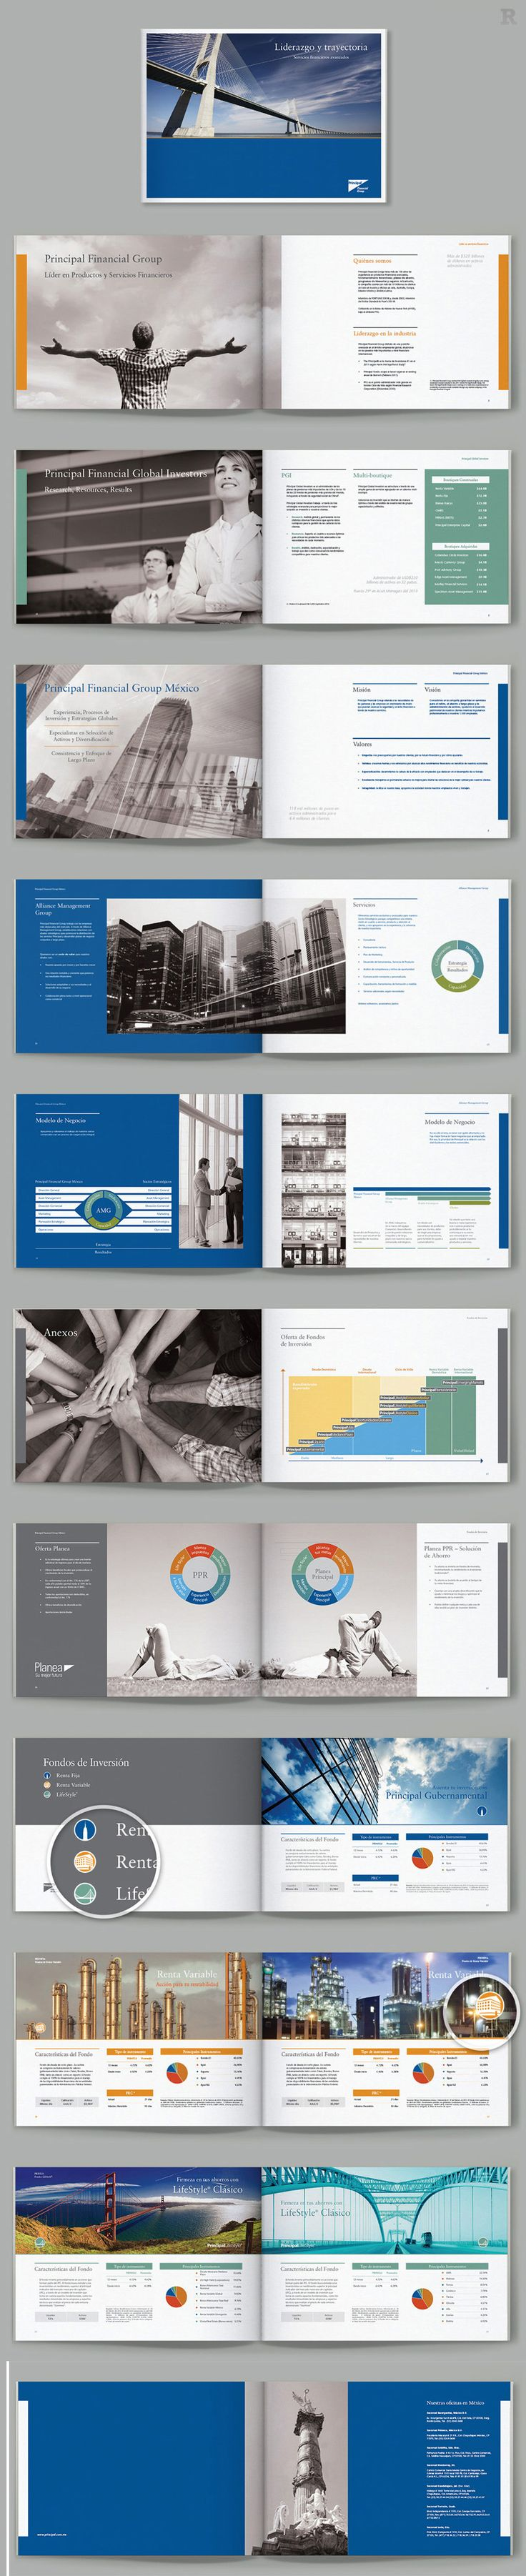 Principal Financial Group Mexico brochure, look it at robertomc.com